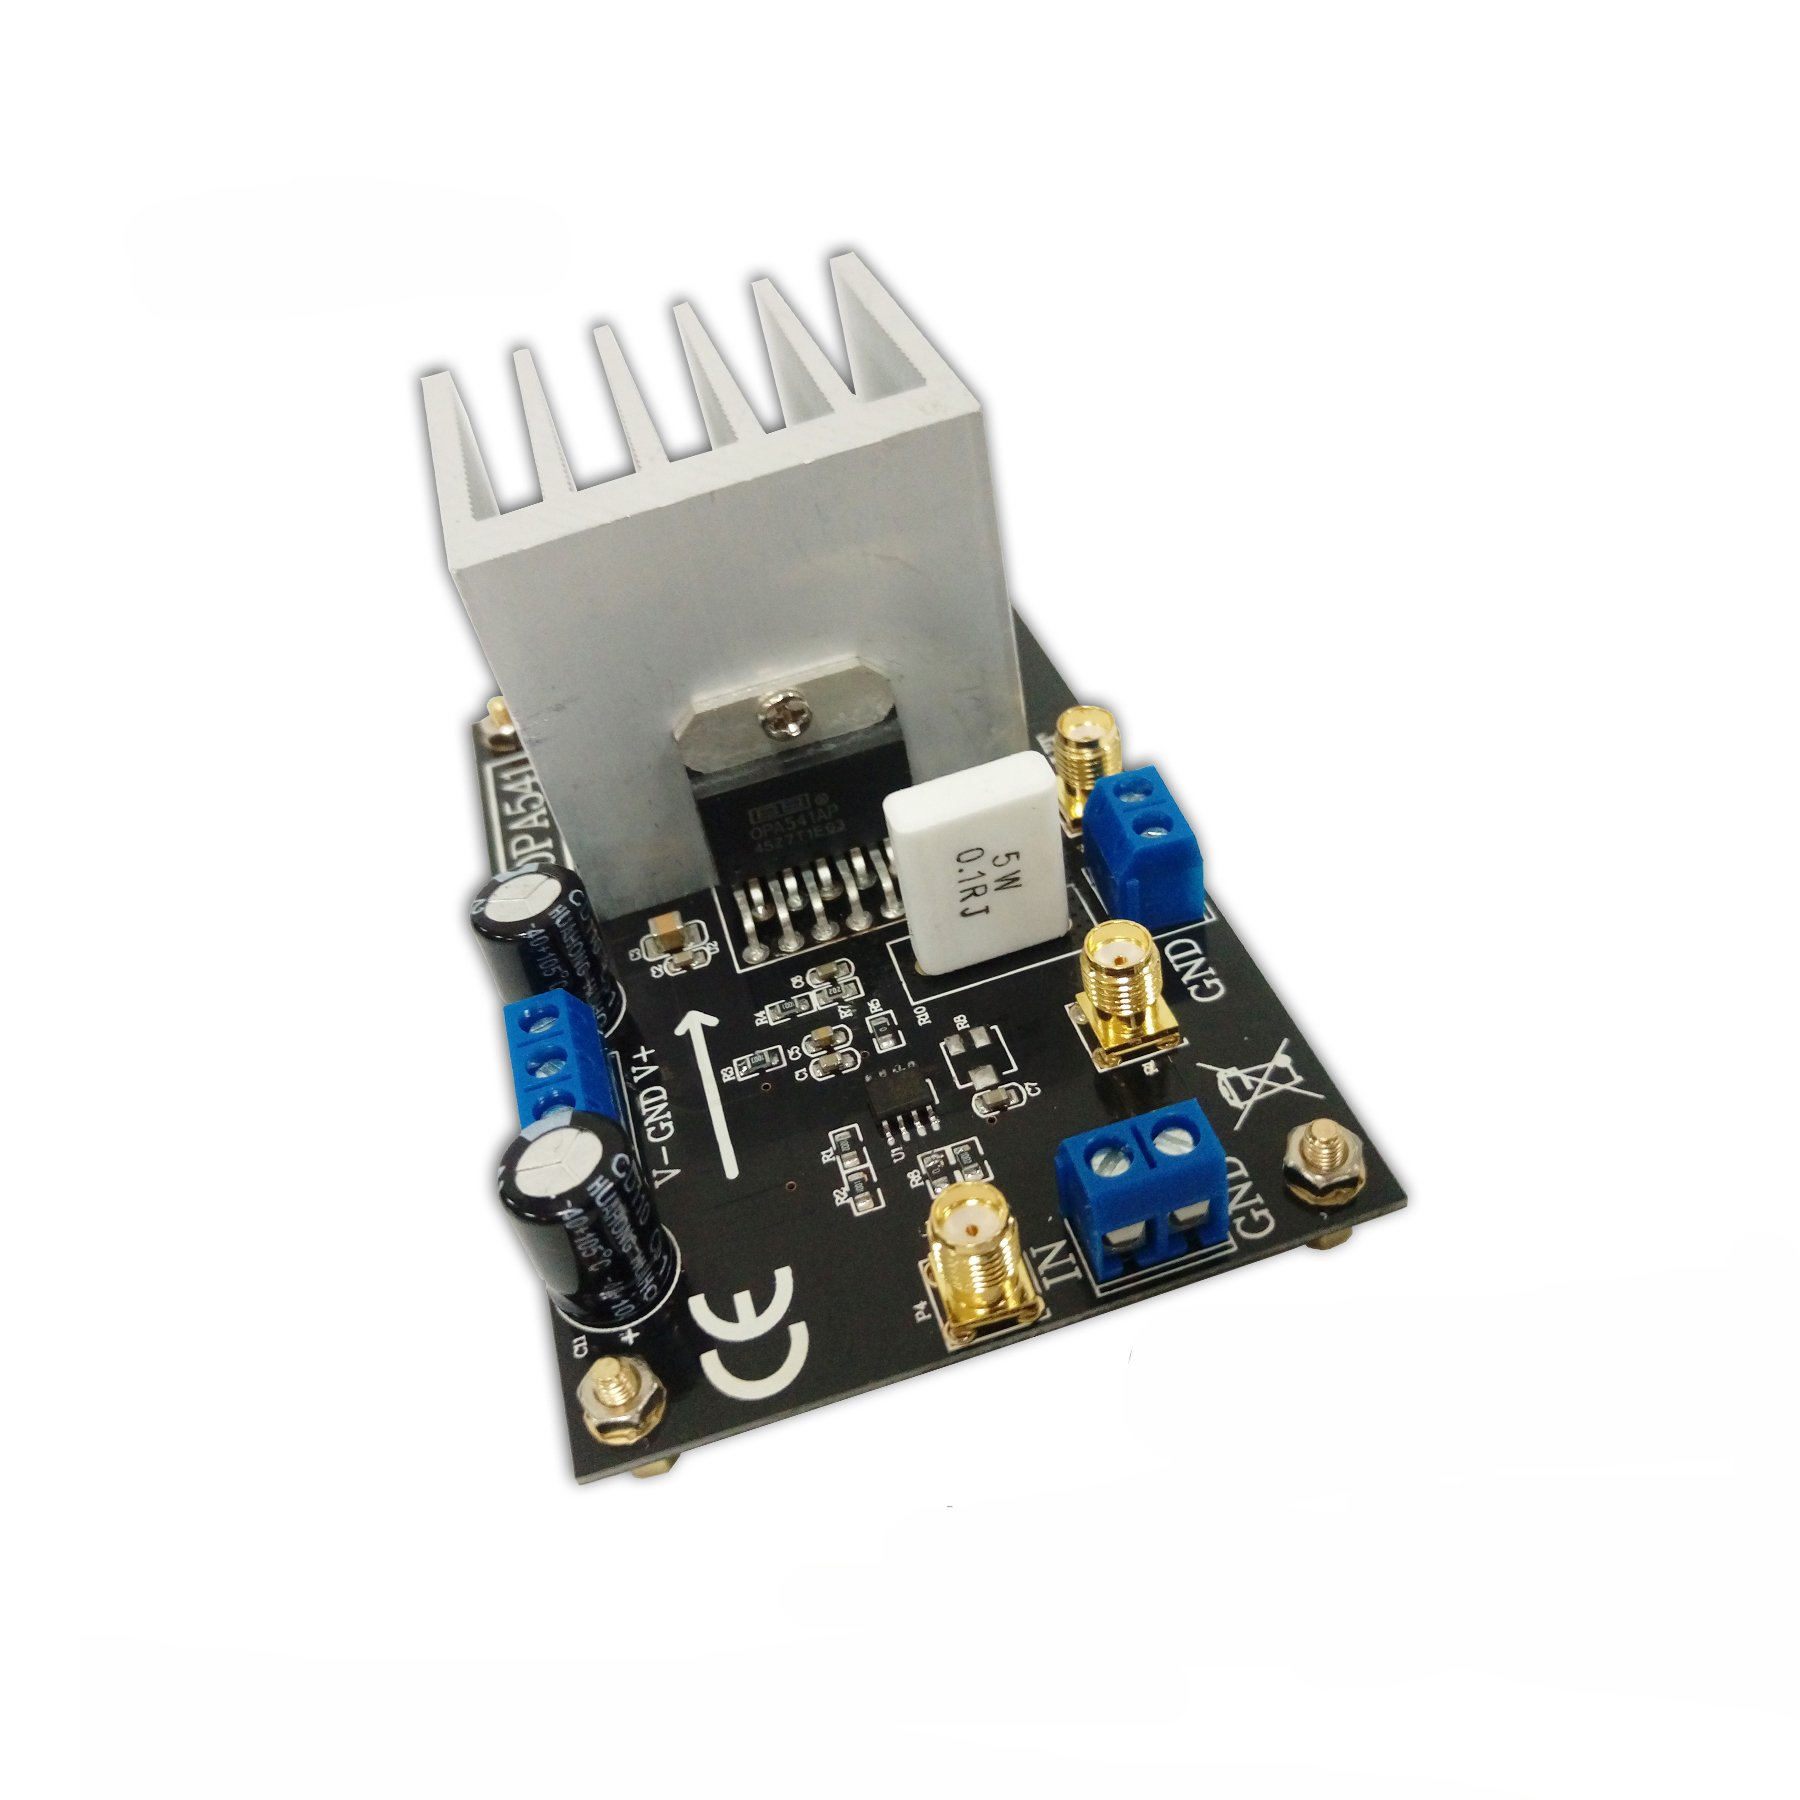 Taidacent OPA541 High Power Monolithic Operational Amplifier 5A Current High Voltage Audio Amplifier sound Amplifier Board